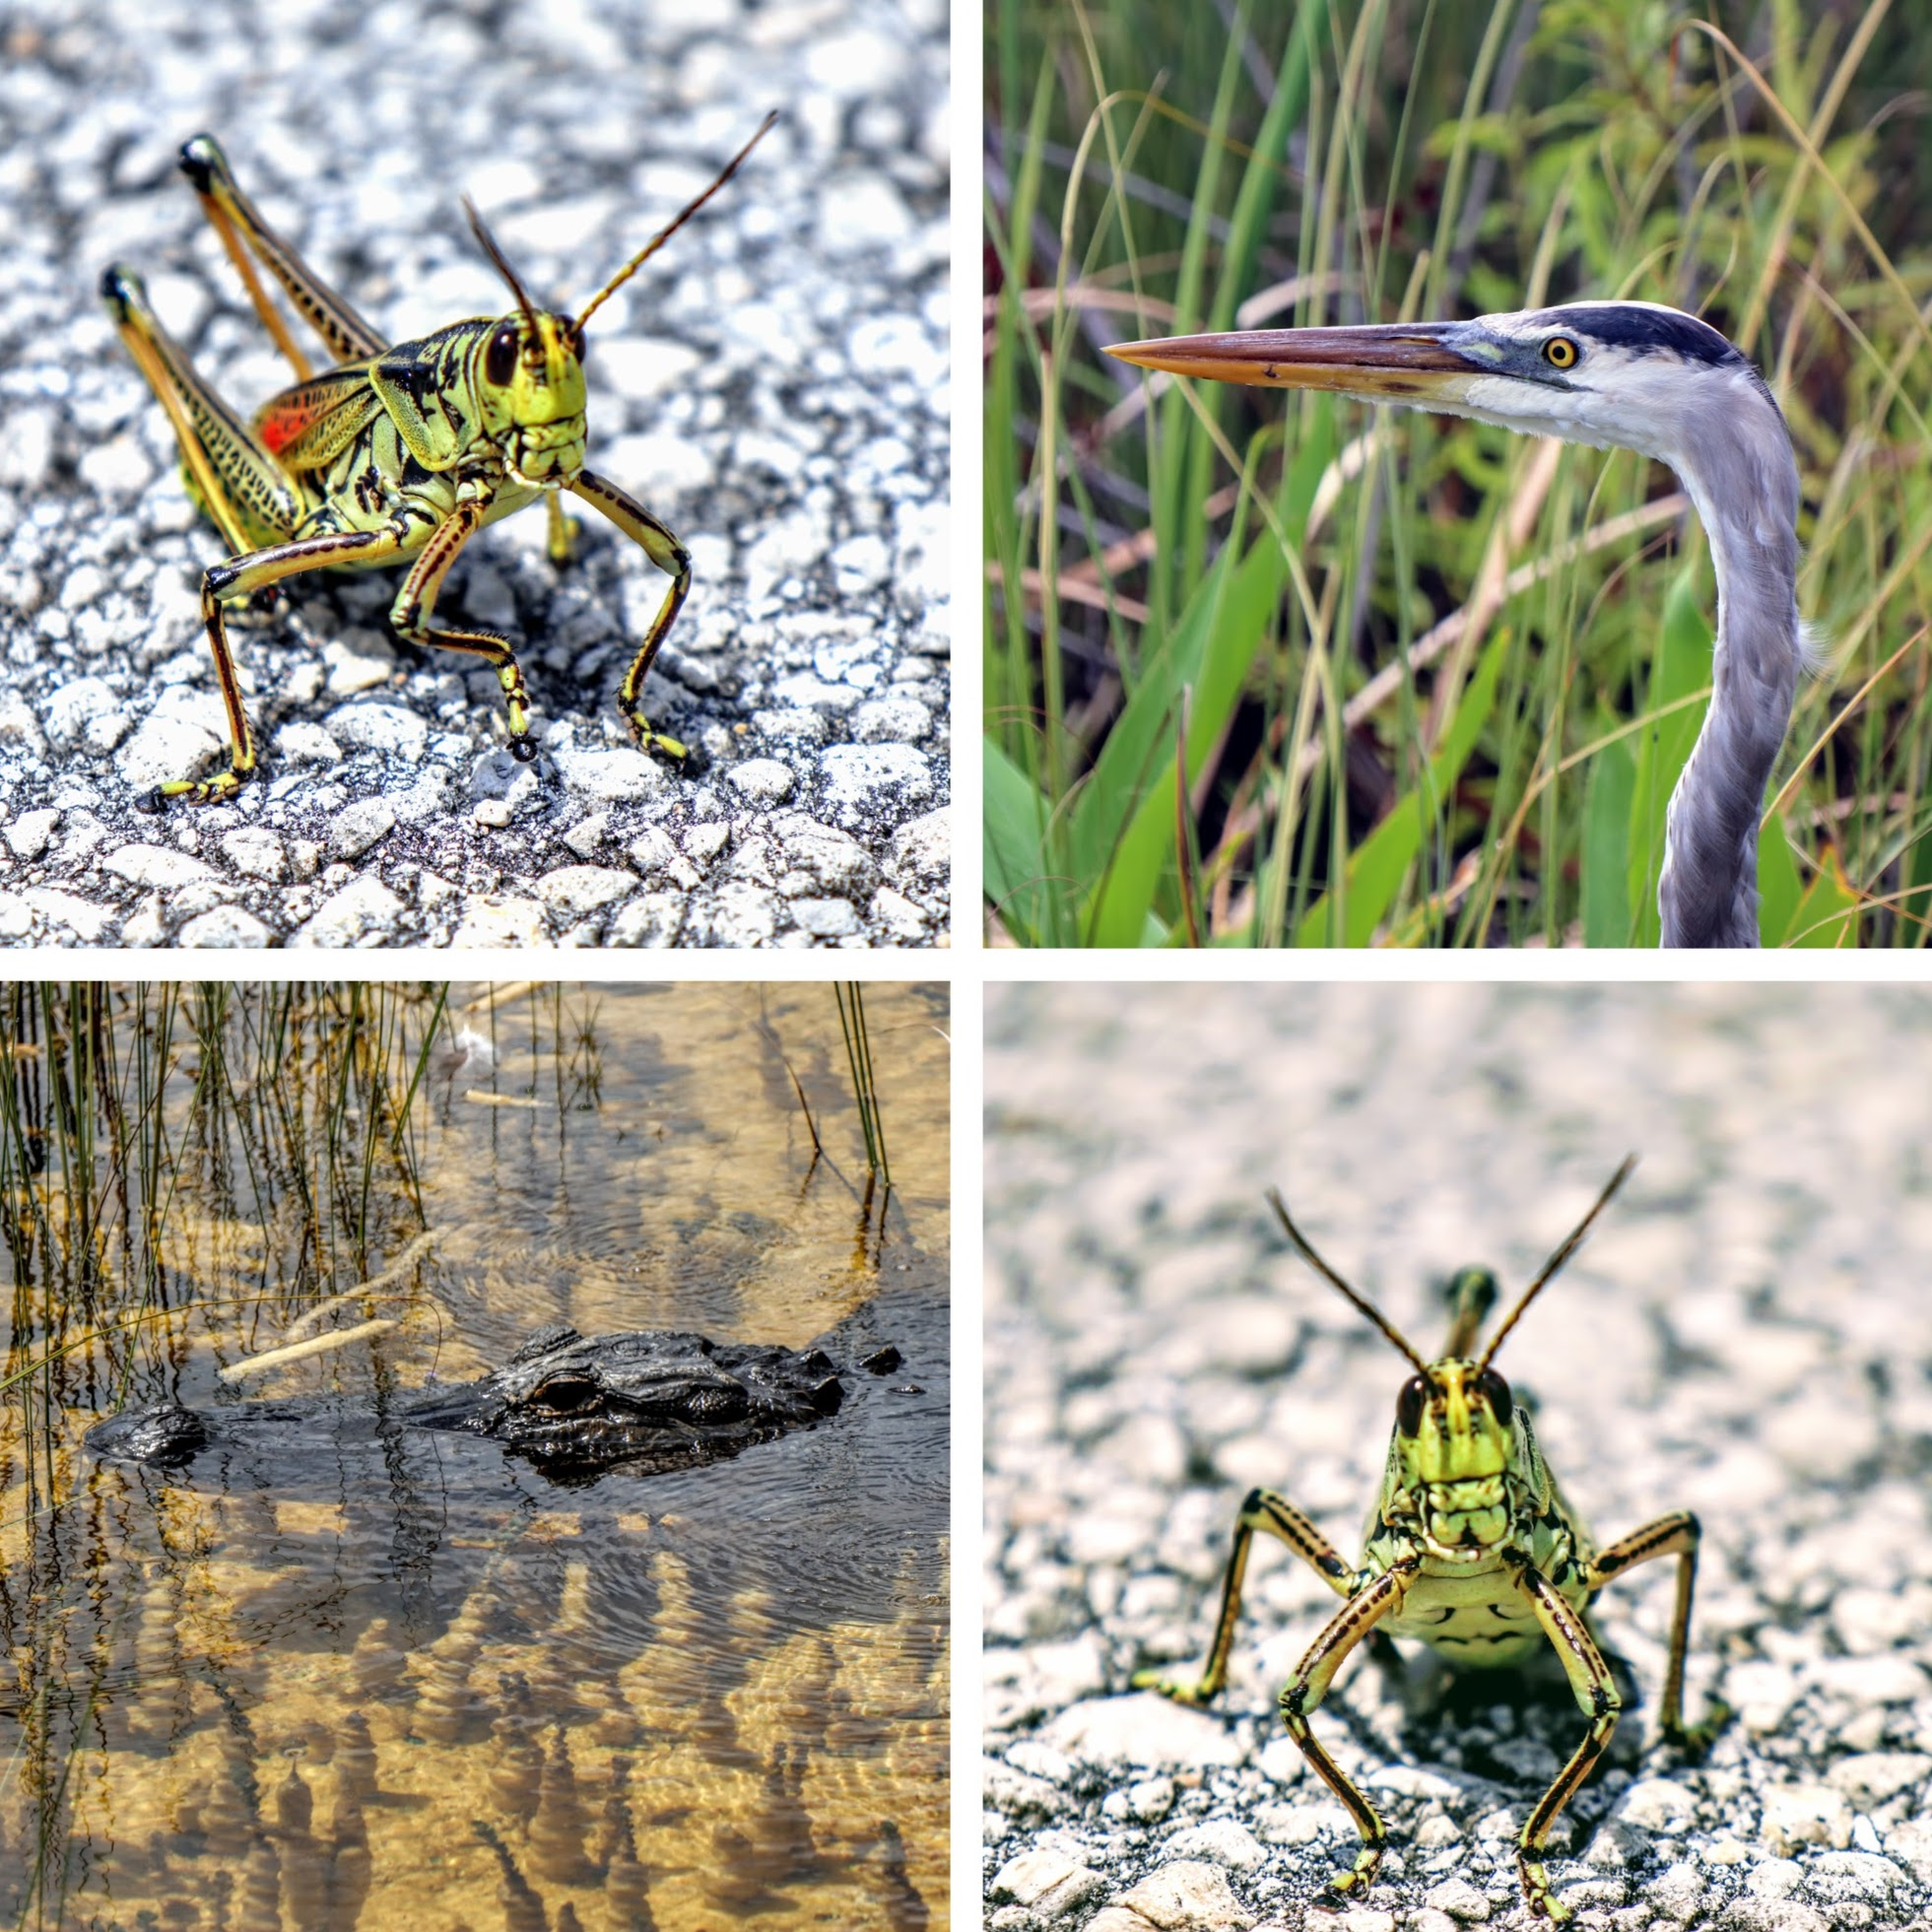 Collage of wildlife found in Shark Valley Everglades National Park